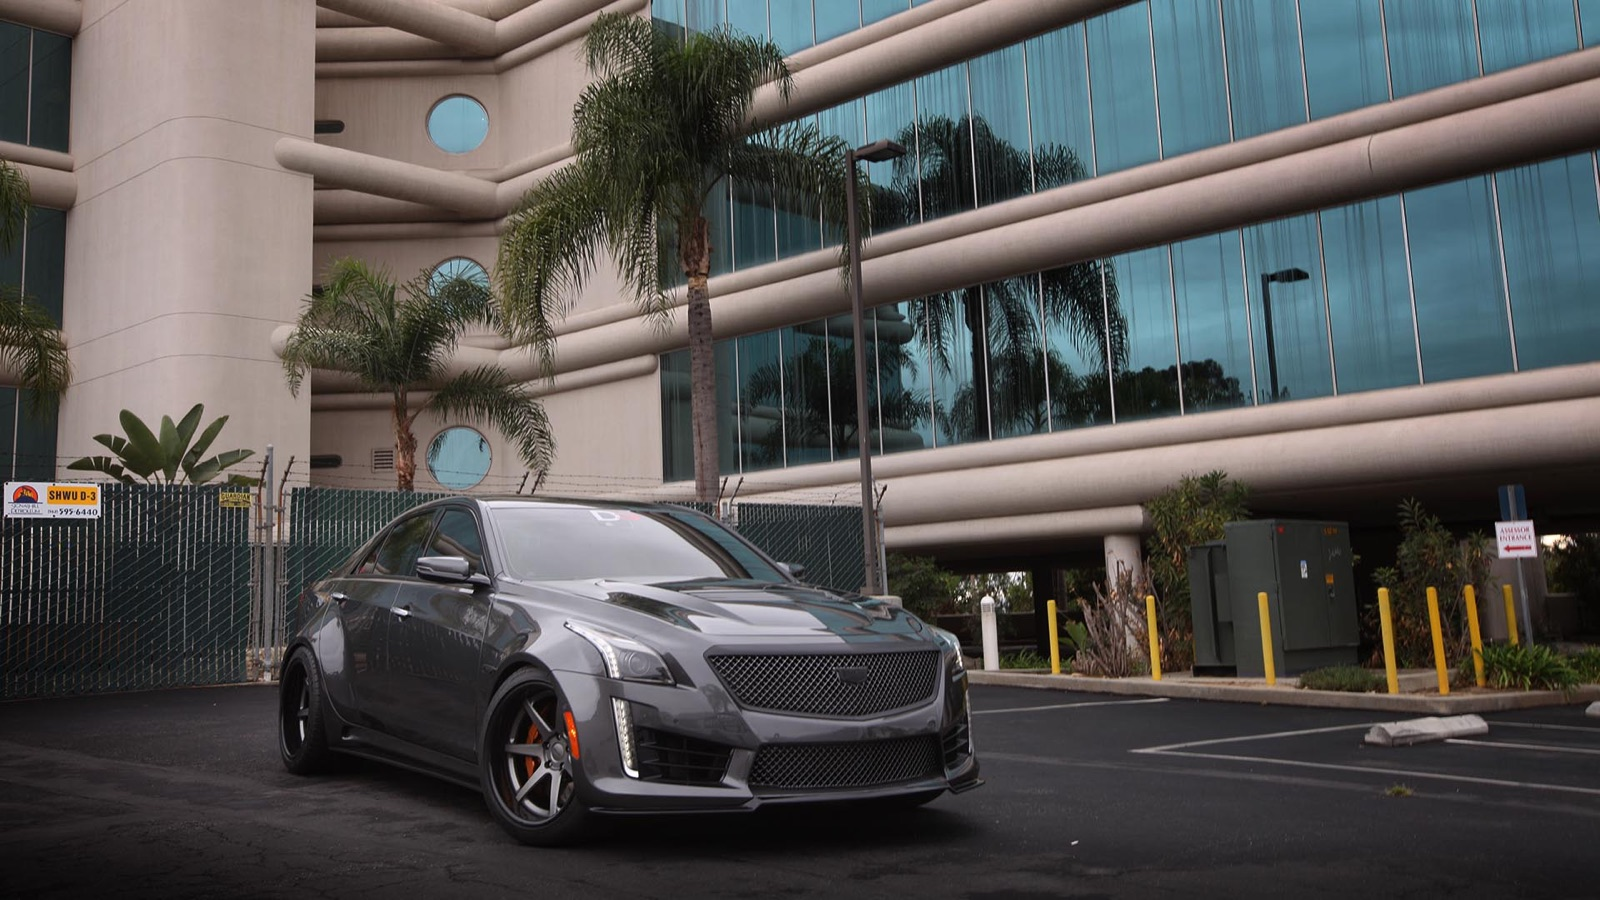 hight resolution of widebody d3 cadillac cts v is a beast gm authority rh gmauthority com d3 cadillac srx d3 cadillac cts v coupe